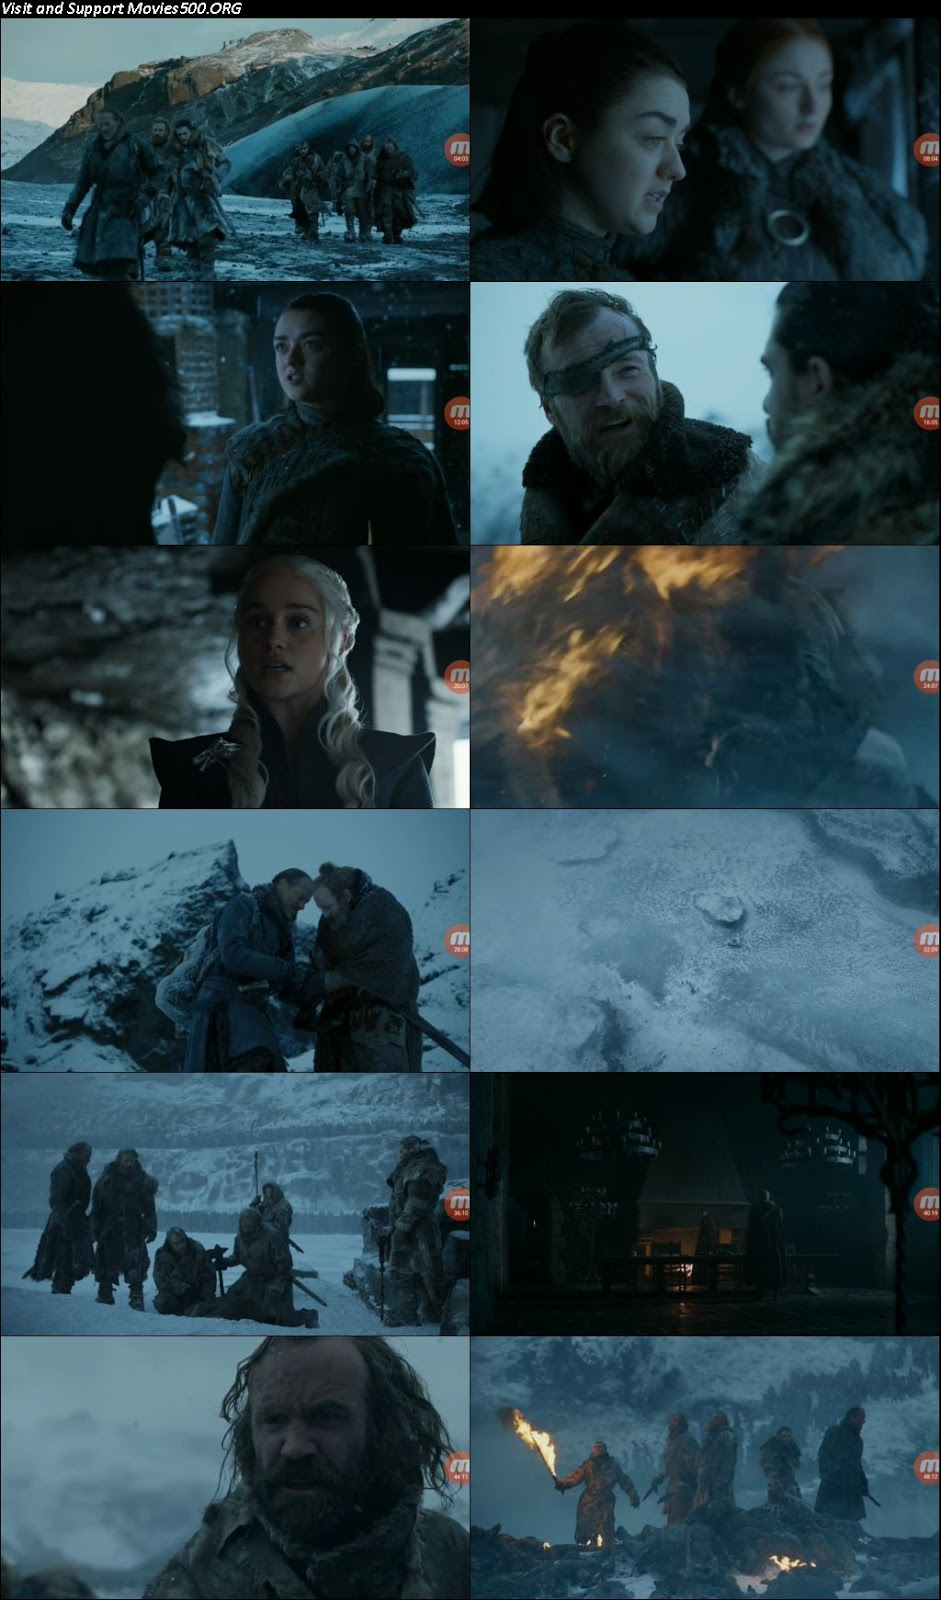 Game of Thrones 2017 S07 Episode 06 Download HDRip 720P [ LEAKED ] at oprbnwjgcljzw.com